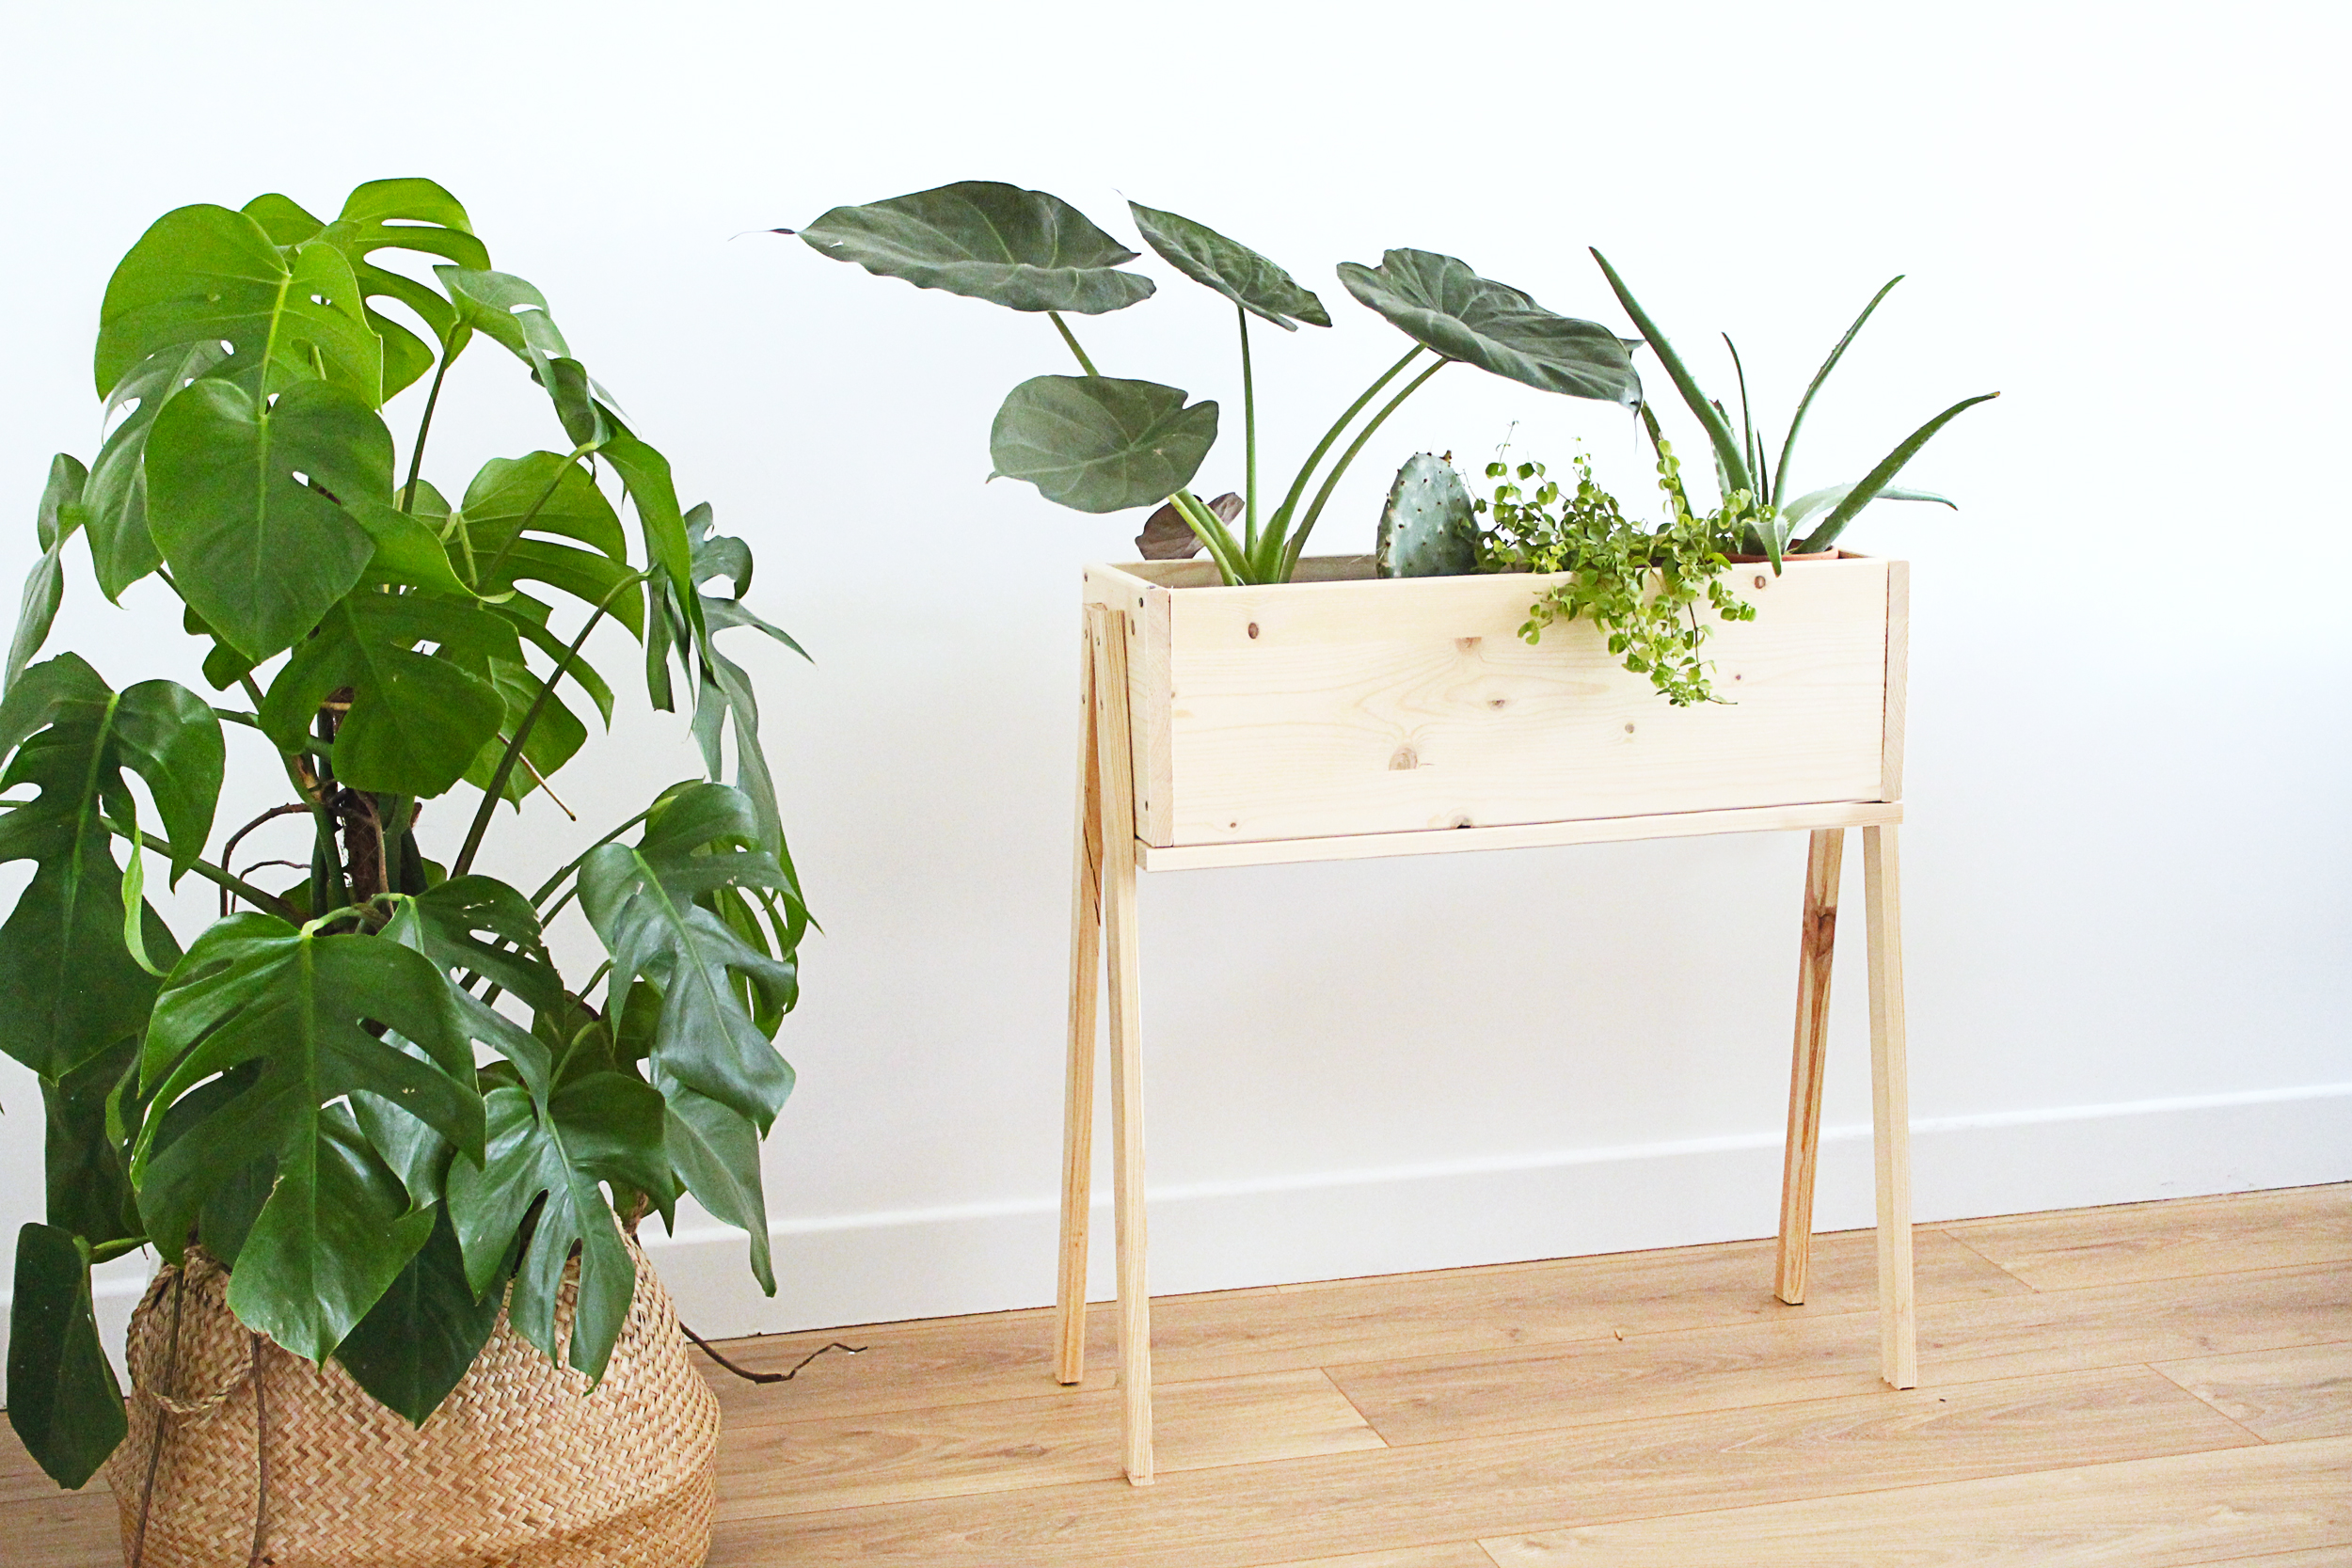 diy une jardiniere sur pieds en bois mademoiselle claudine le blog. Black Bedroom Furniture Sets. Home Design Ideas